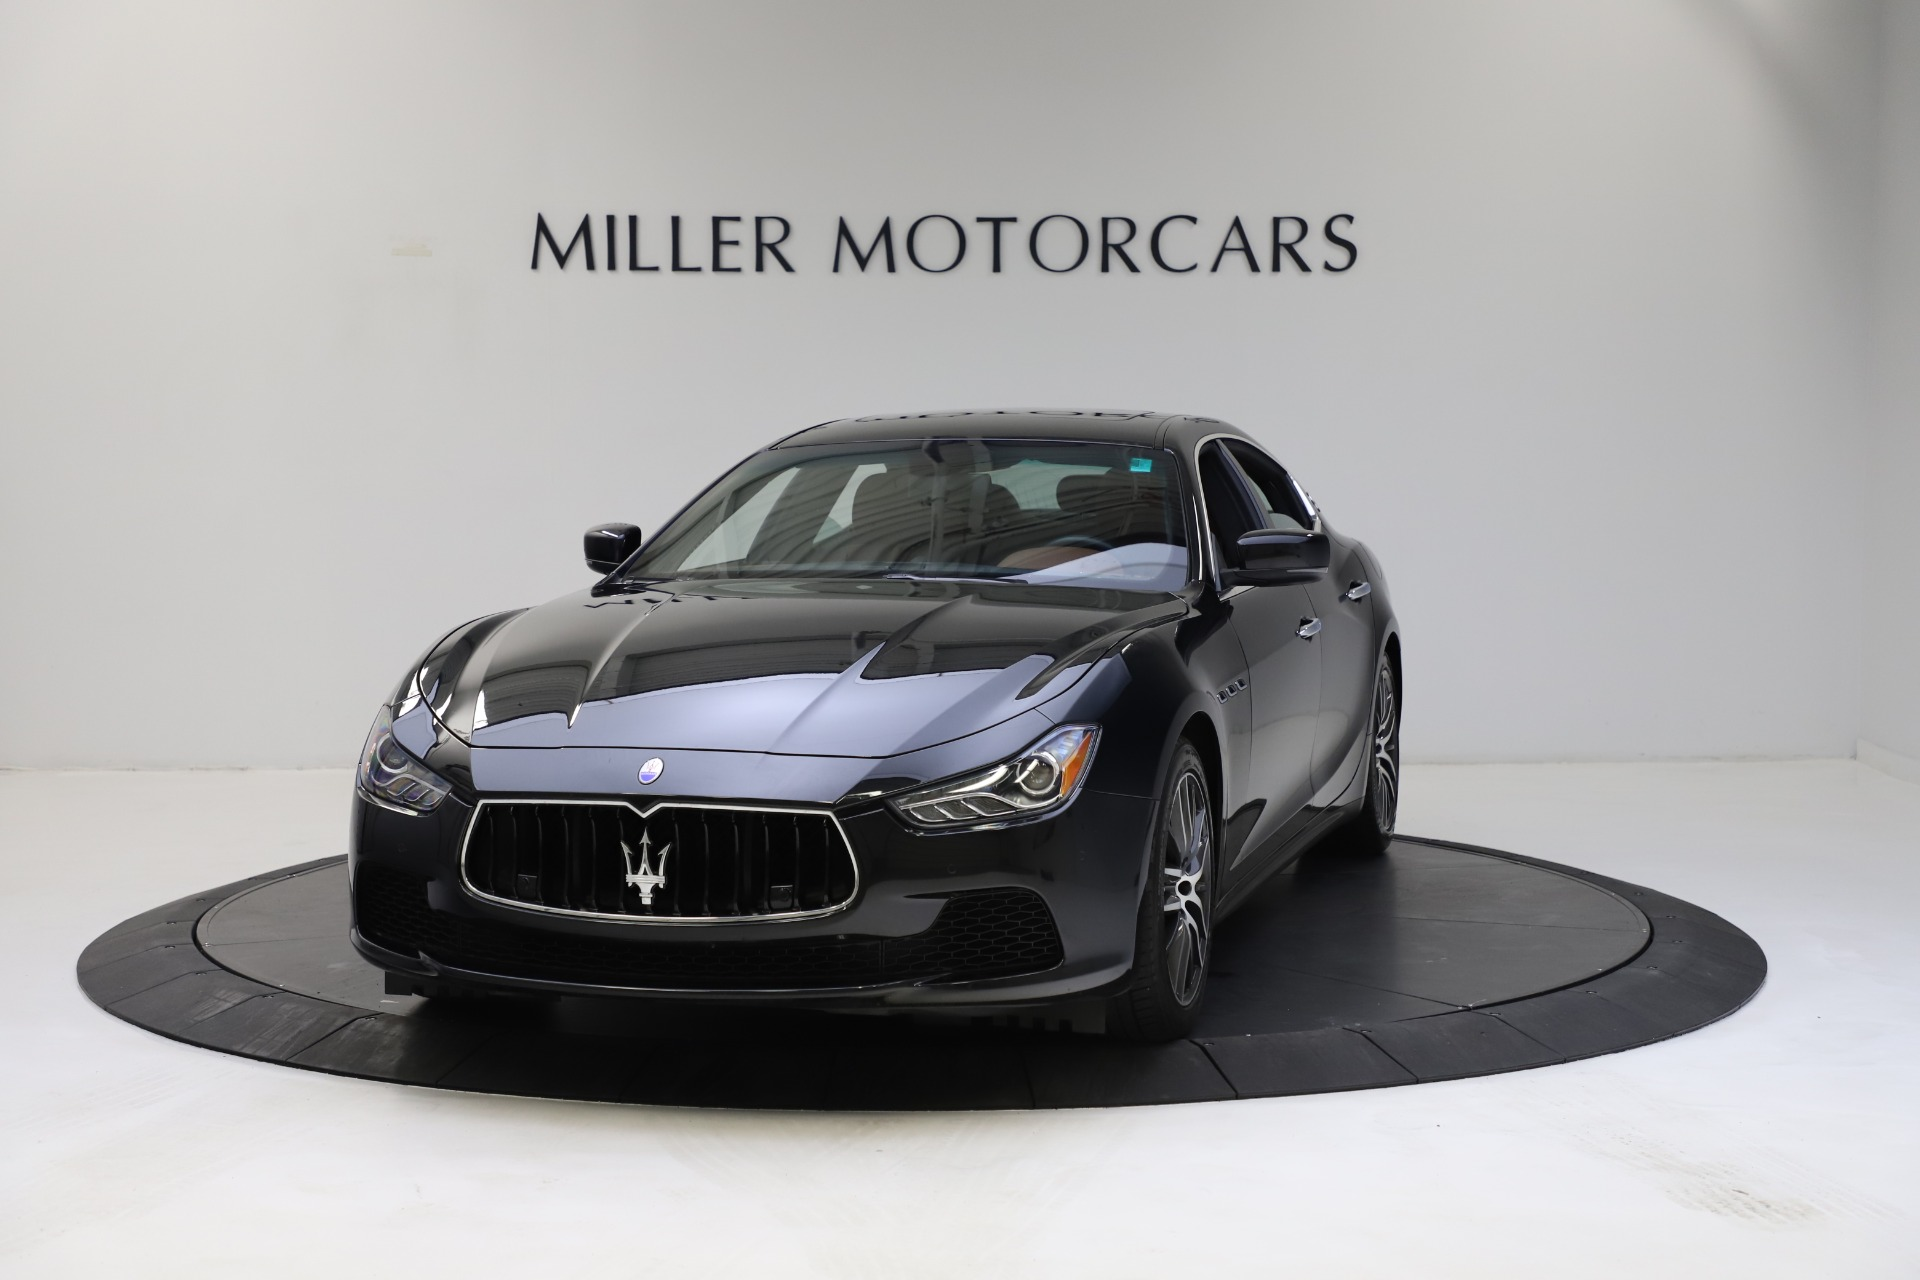 Used 2014 Maserati Ghibli S Q4 for sale $29,900 at Pagani of Greenwich in Greenwich CT 06830 1